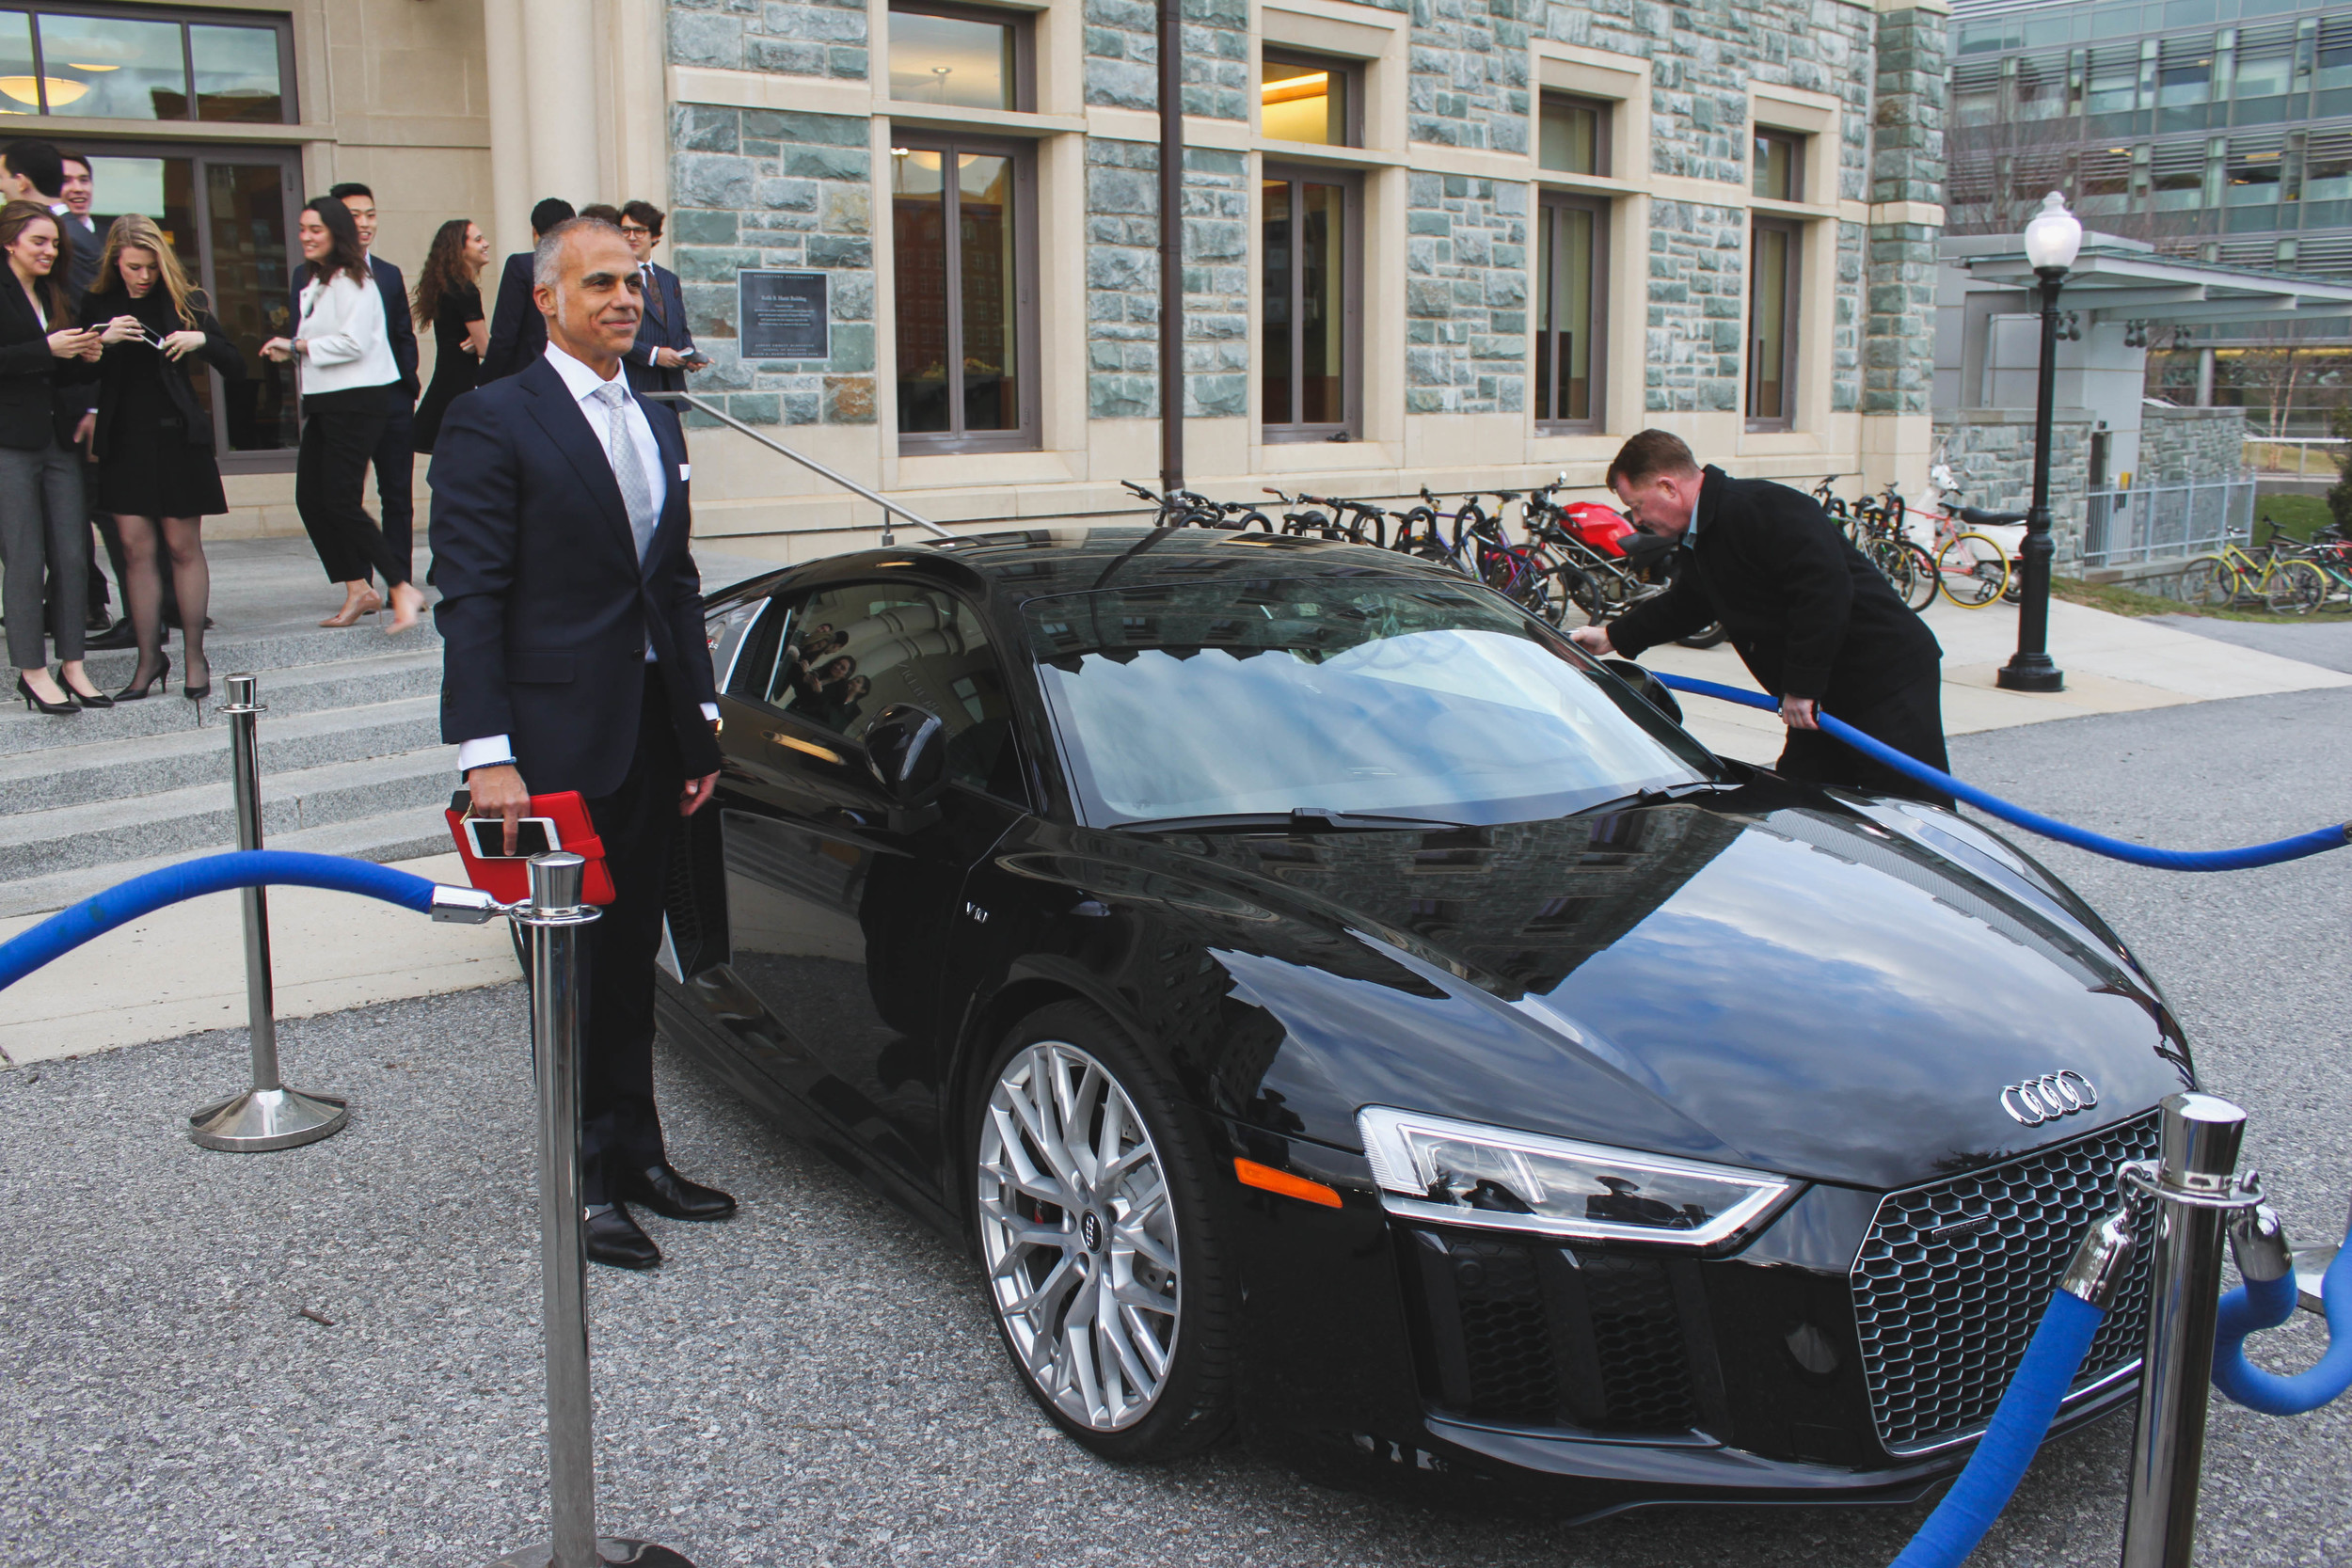 Mark Del Rosso posing with the Audi R8 in front of the McDonough School of Business